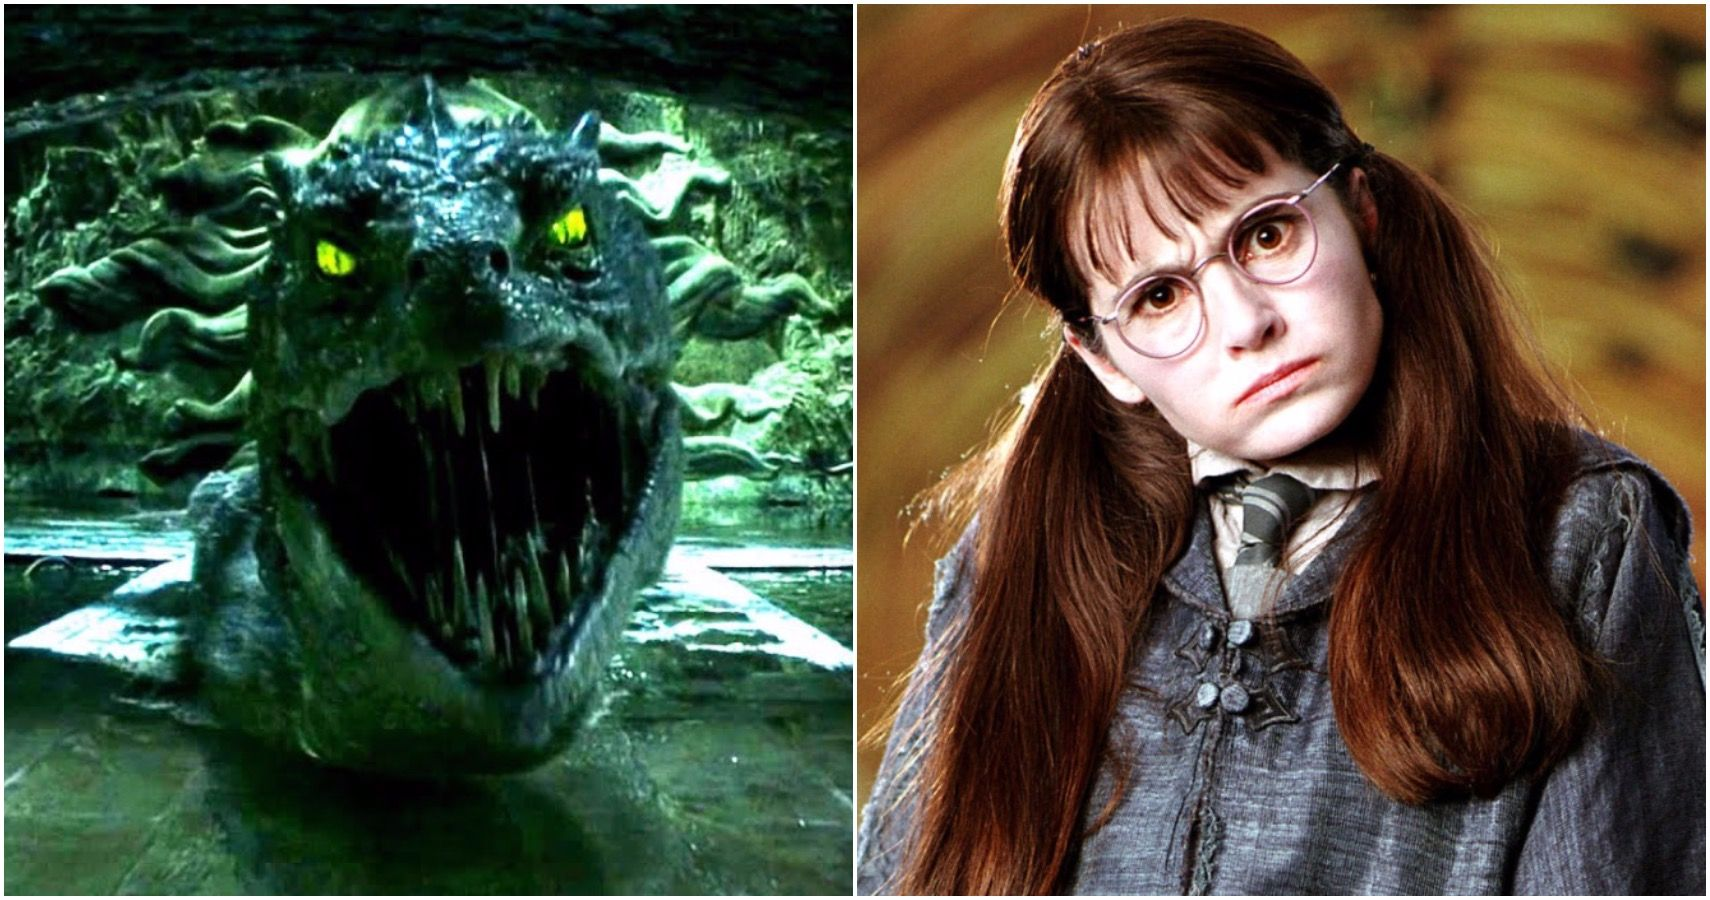 Harry Potter: 10 Unanswered Questions We Still Have About The Chamber Of Secrets